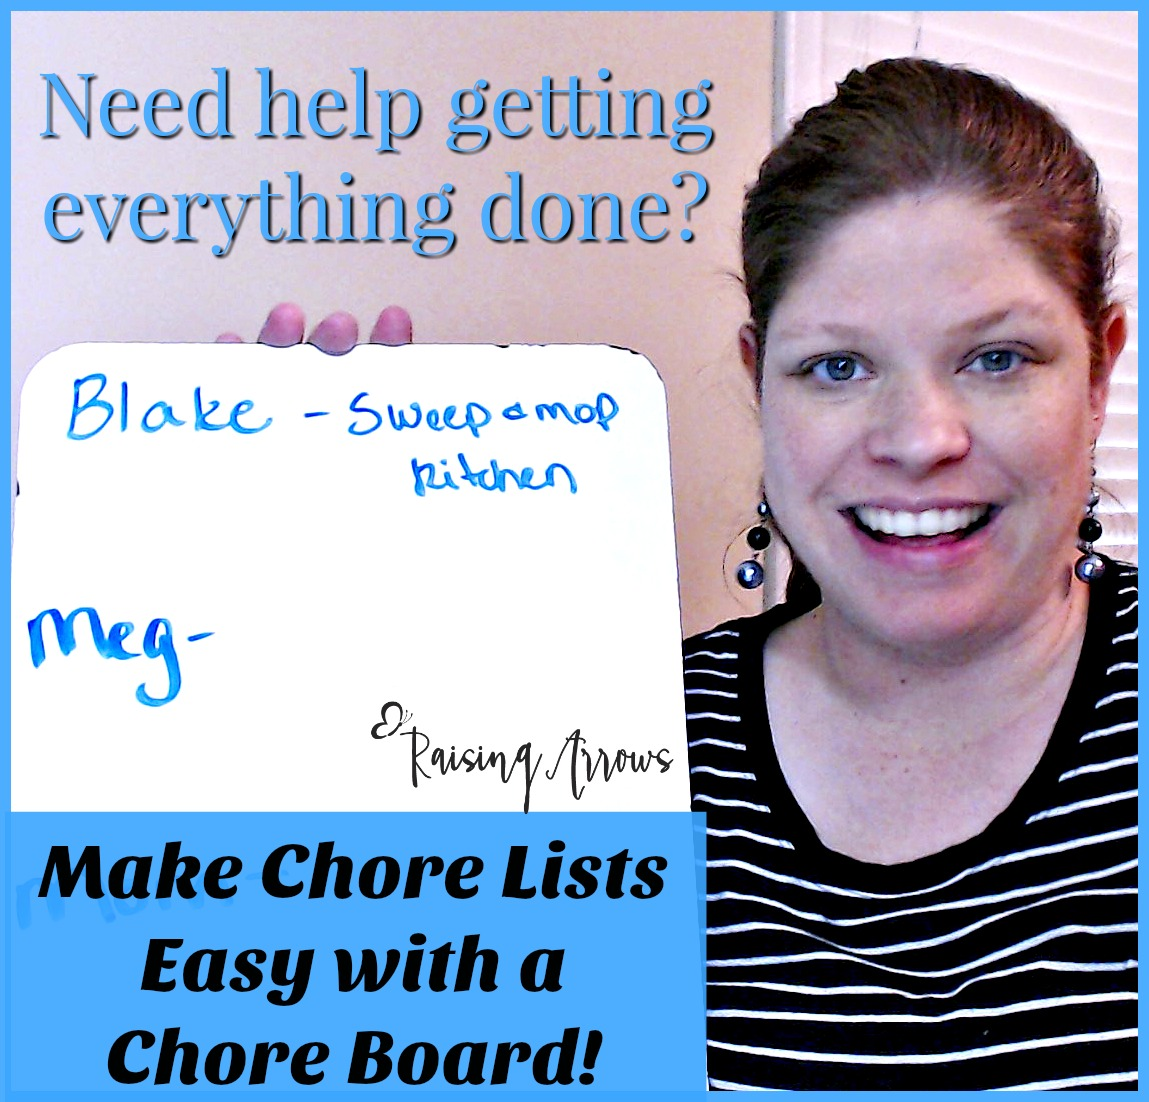 Making Chores Easy with a Chore Board